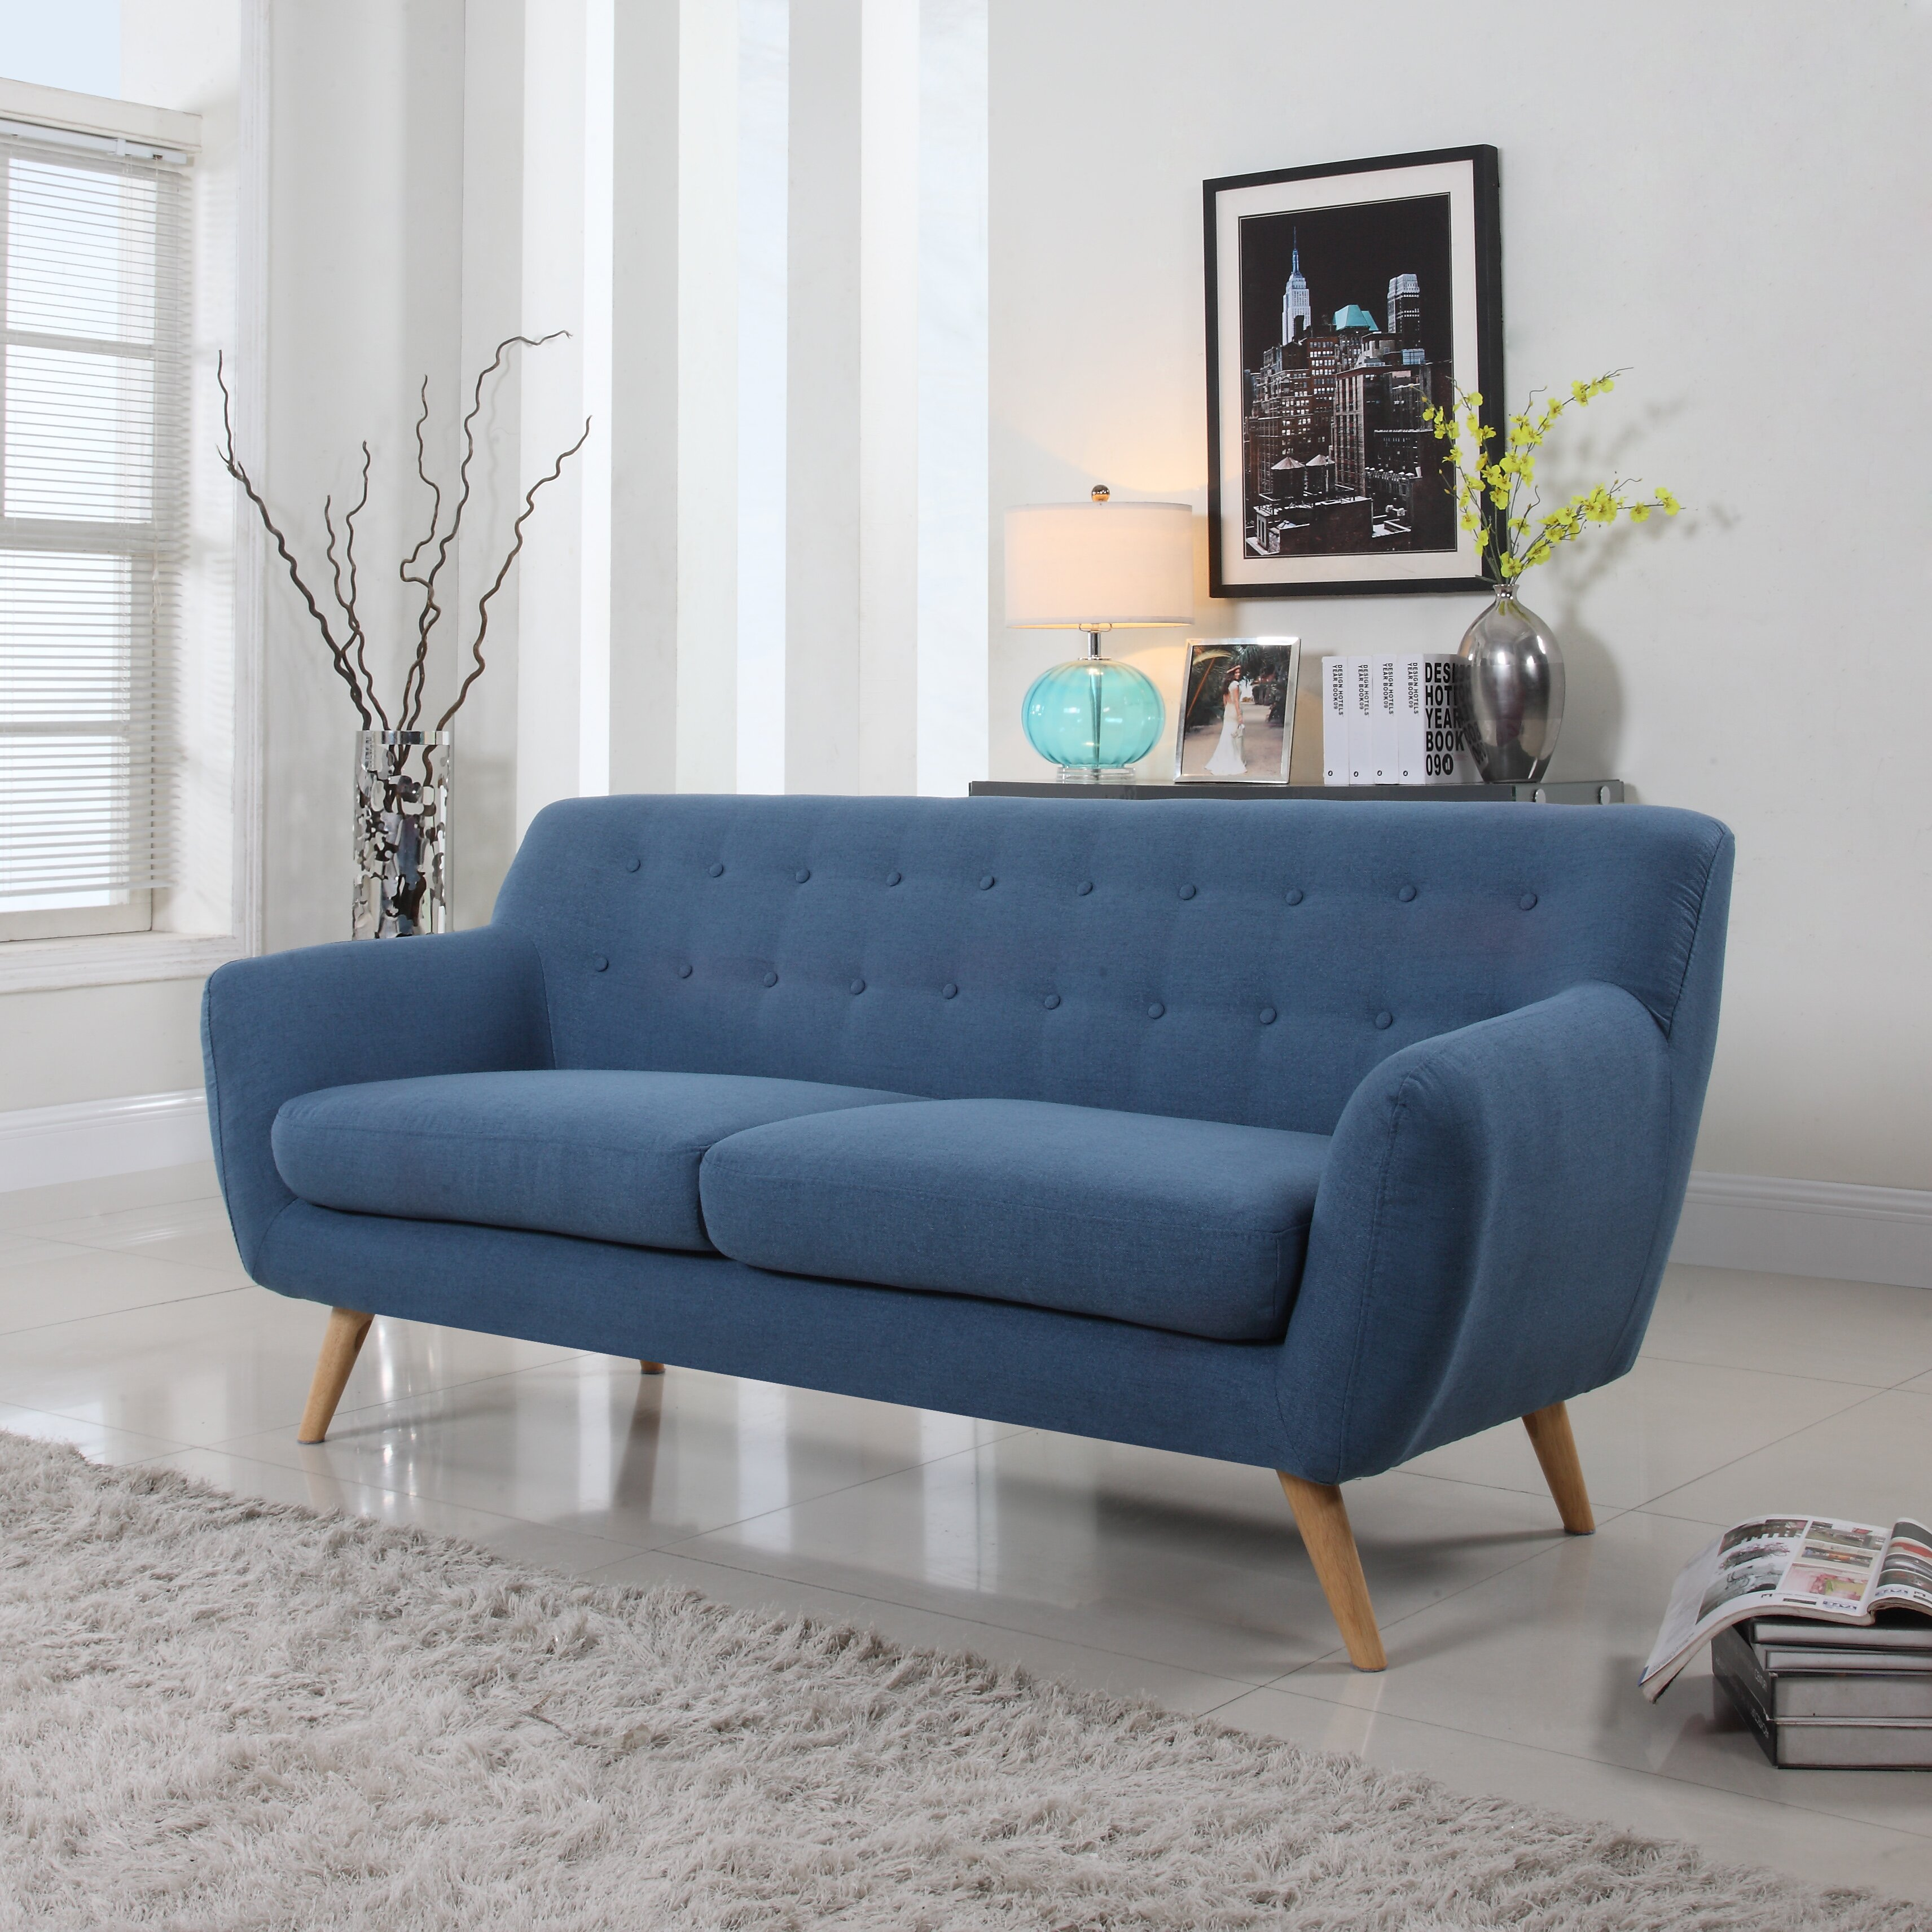 madison home usa mid century sofa reviews wayfair. Black Bedroom Furniture Sets. Home Design Ideas